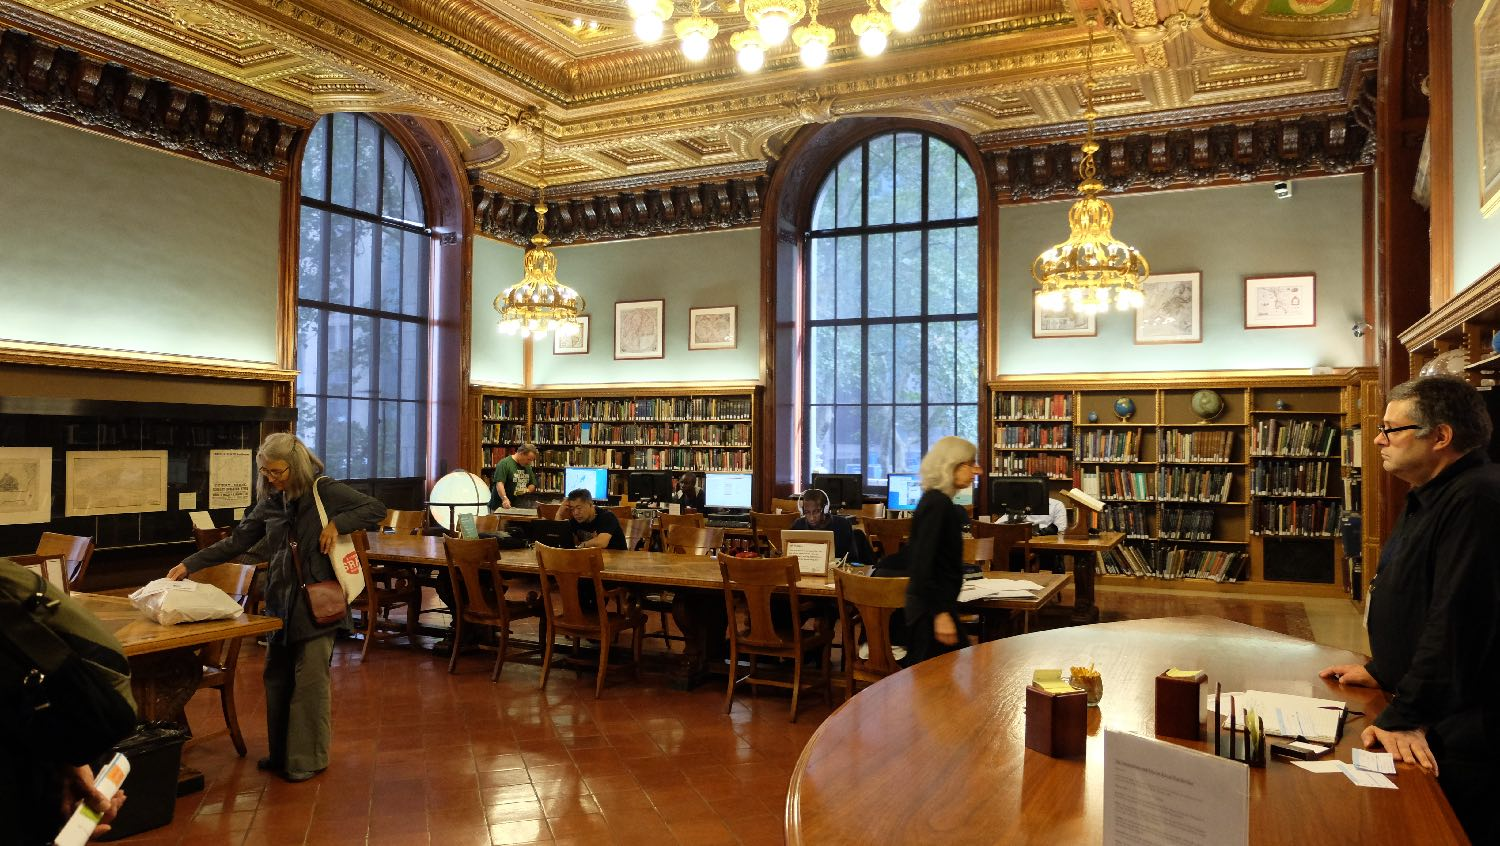 The New York Public Library | Doors |Reading room | 19 th century architecture | photo sandrine cohen